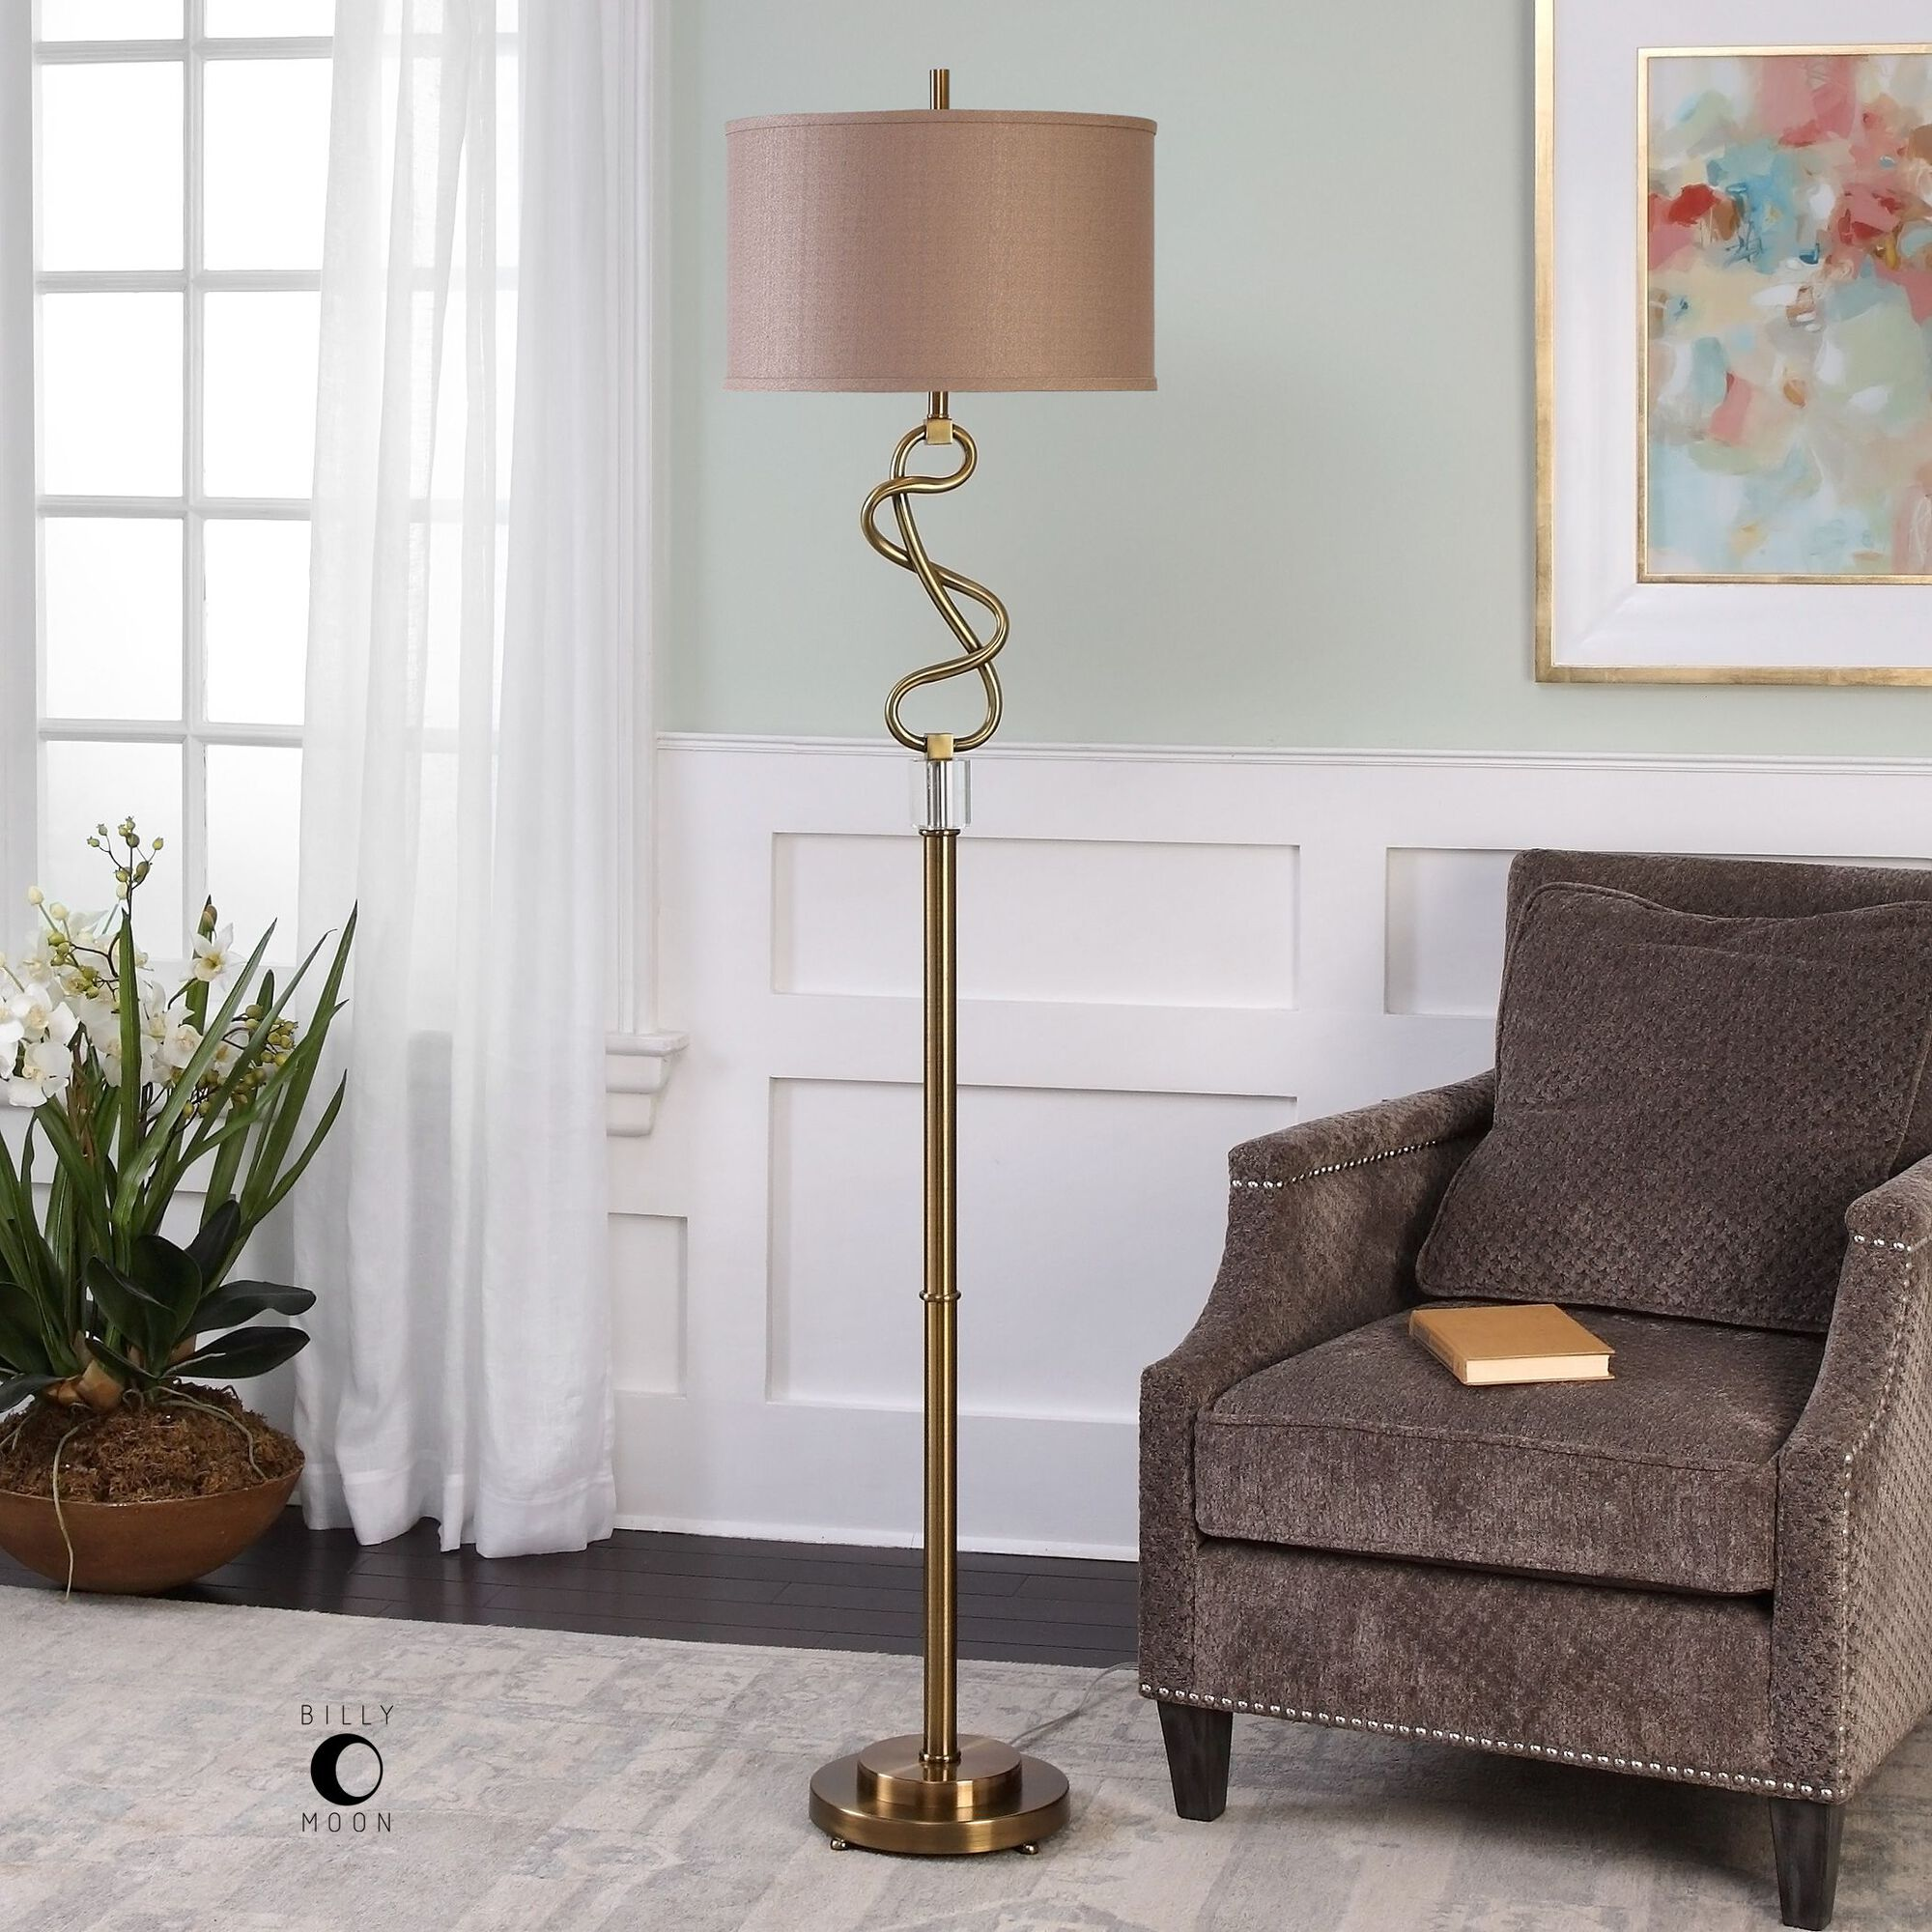 Hand Forged Twisted Floor Lamp in Brushed Brass   Mathis ...